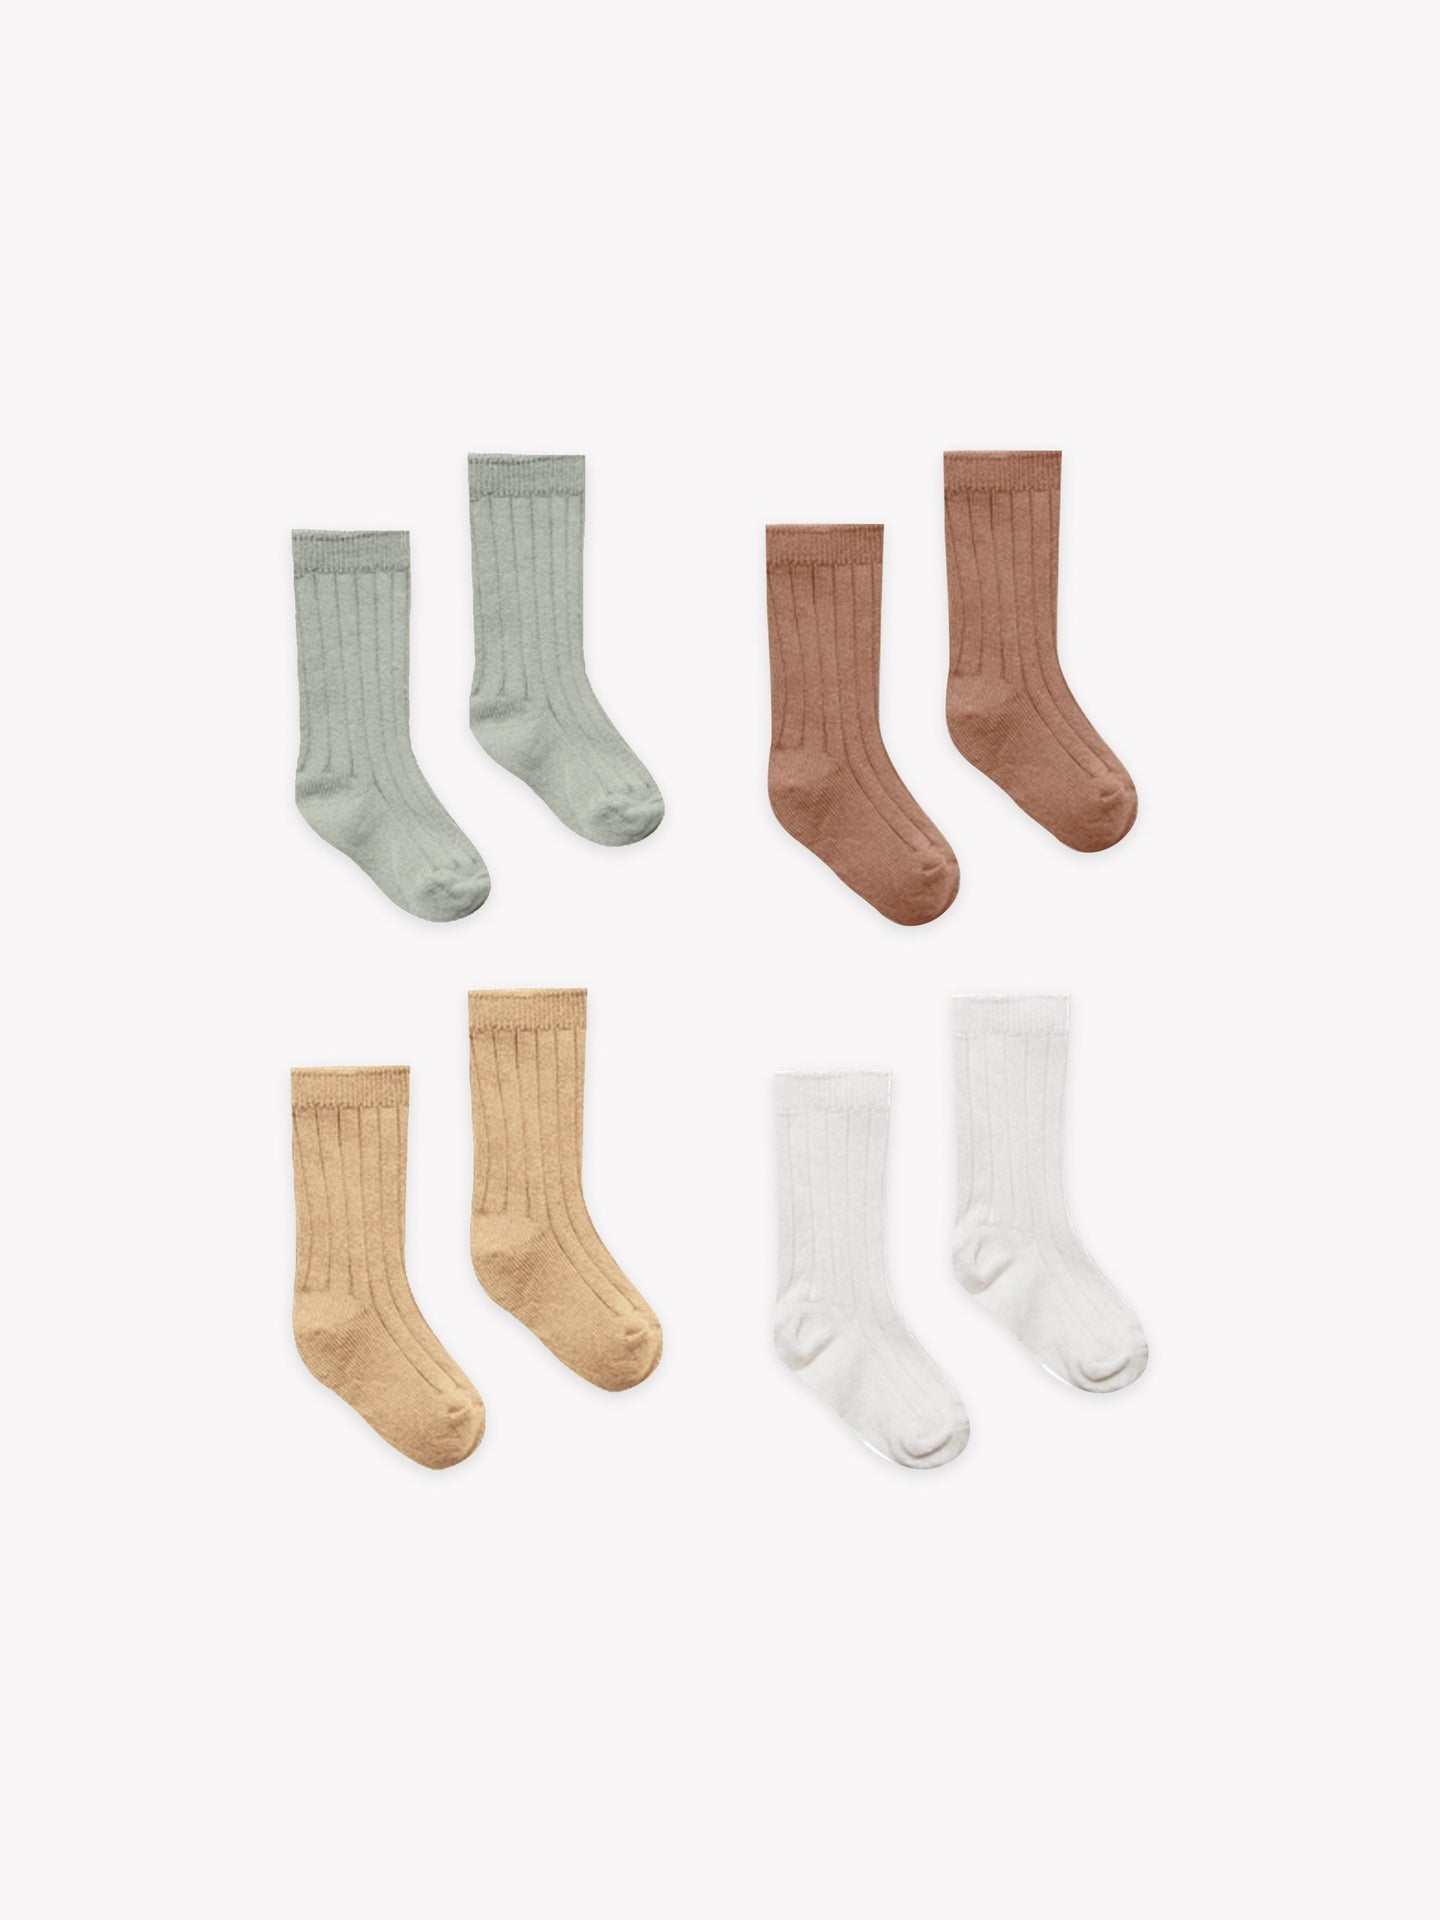 Quincy Mae - Organic Socks 4 Pack Set - SAGE, CLAY, HONEY, IVORY